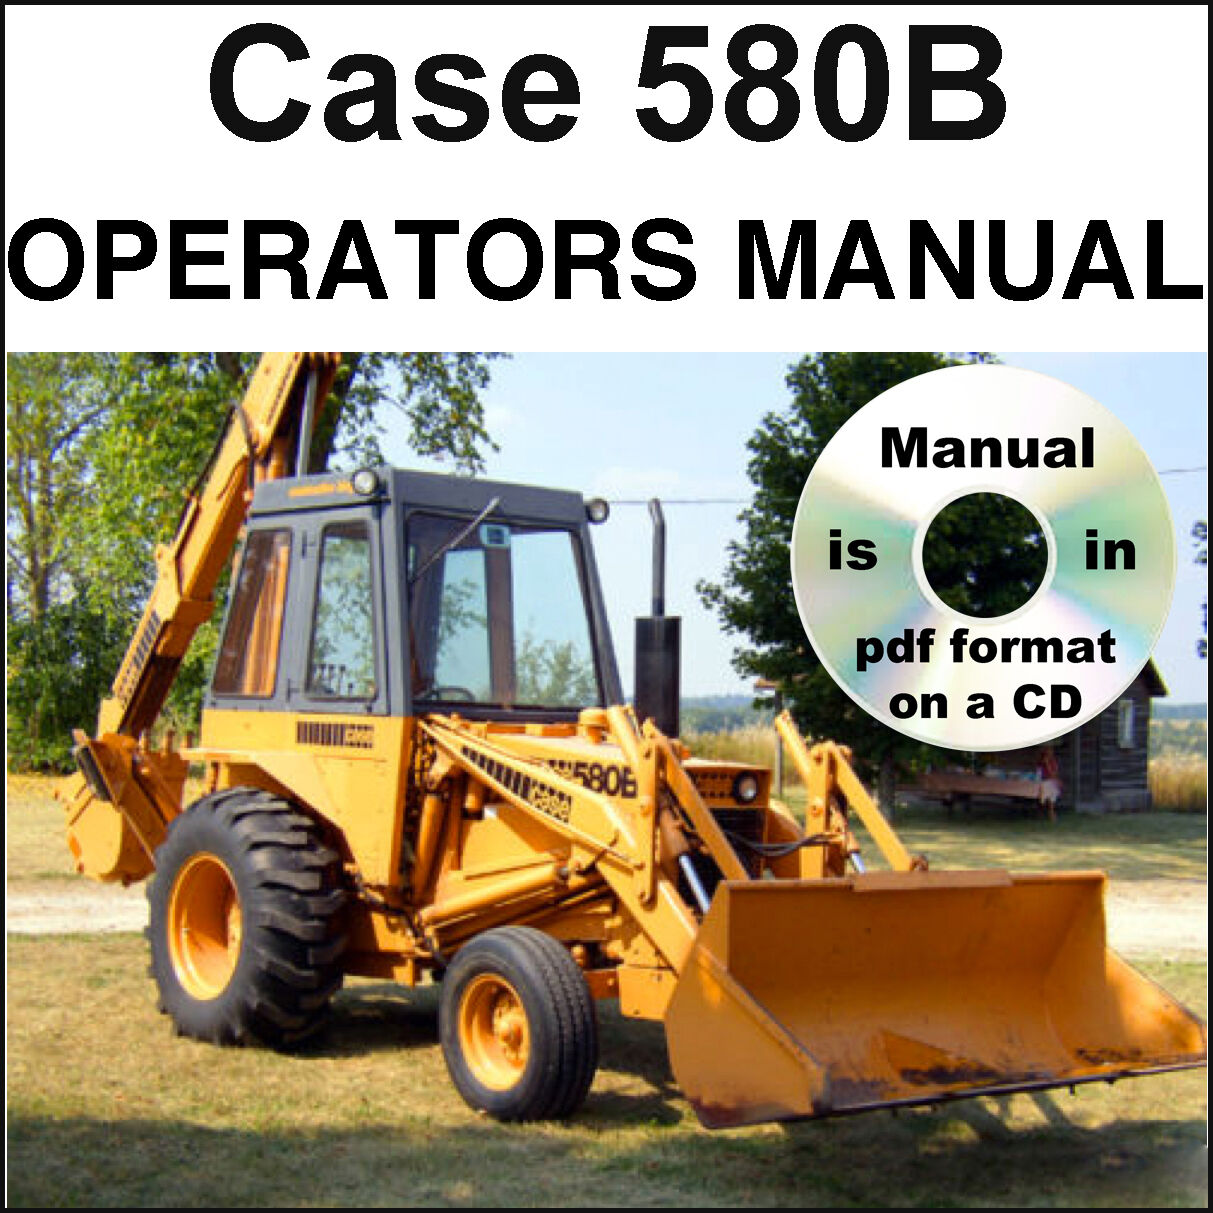 Wiring Diagram For Case 580 Ck Backhoe Electrical Diagrams 580c Free Picture 580d House Symbols U2022